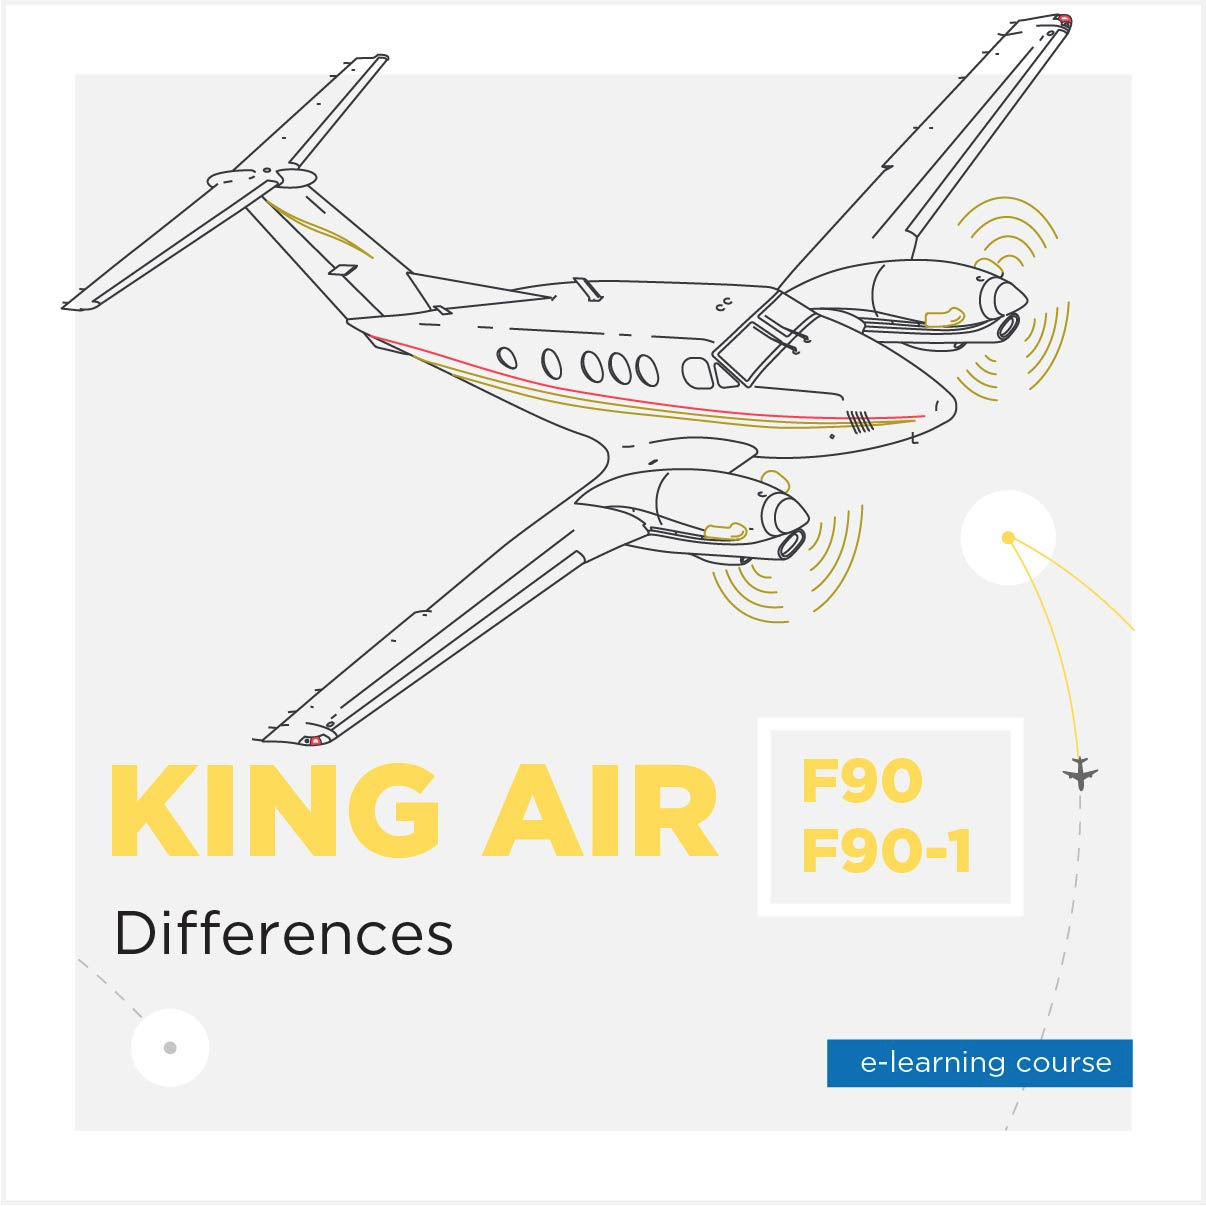 King Air Differences BE-F90/90-1 E-Learning Course